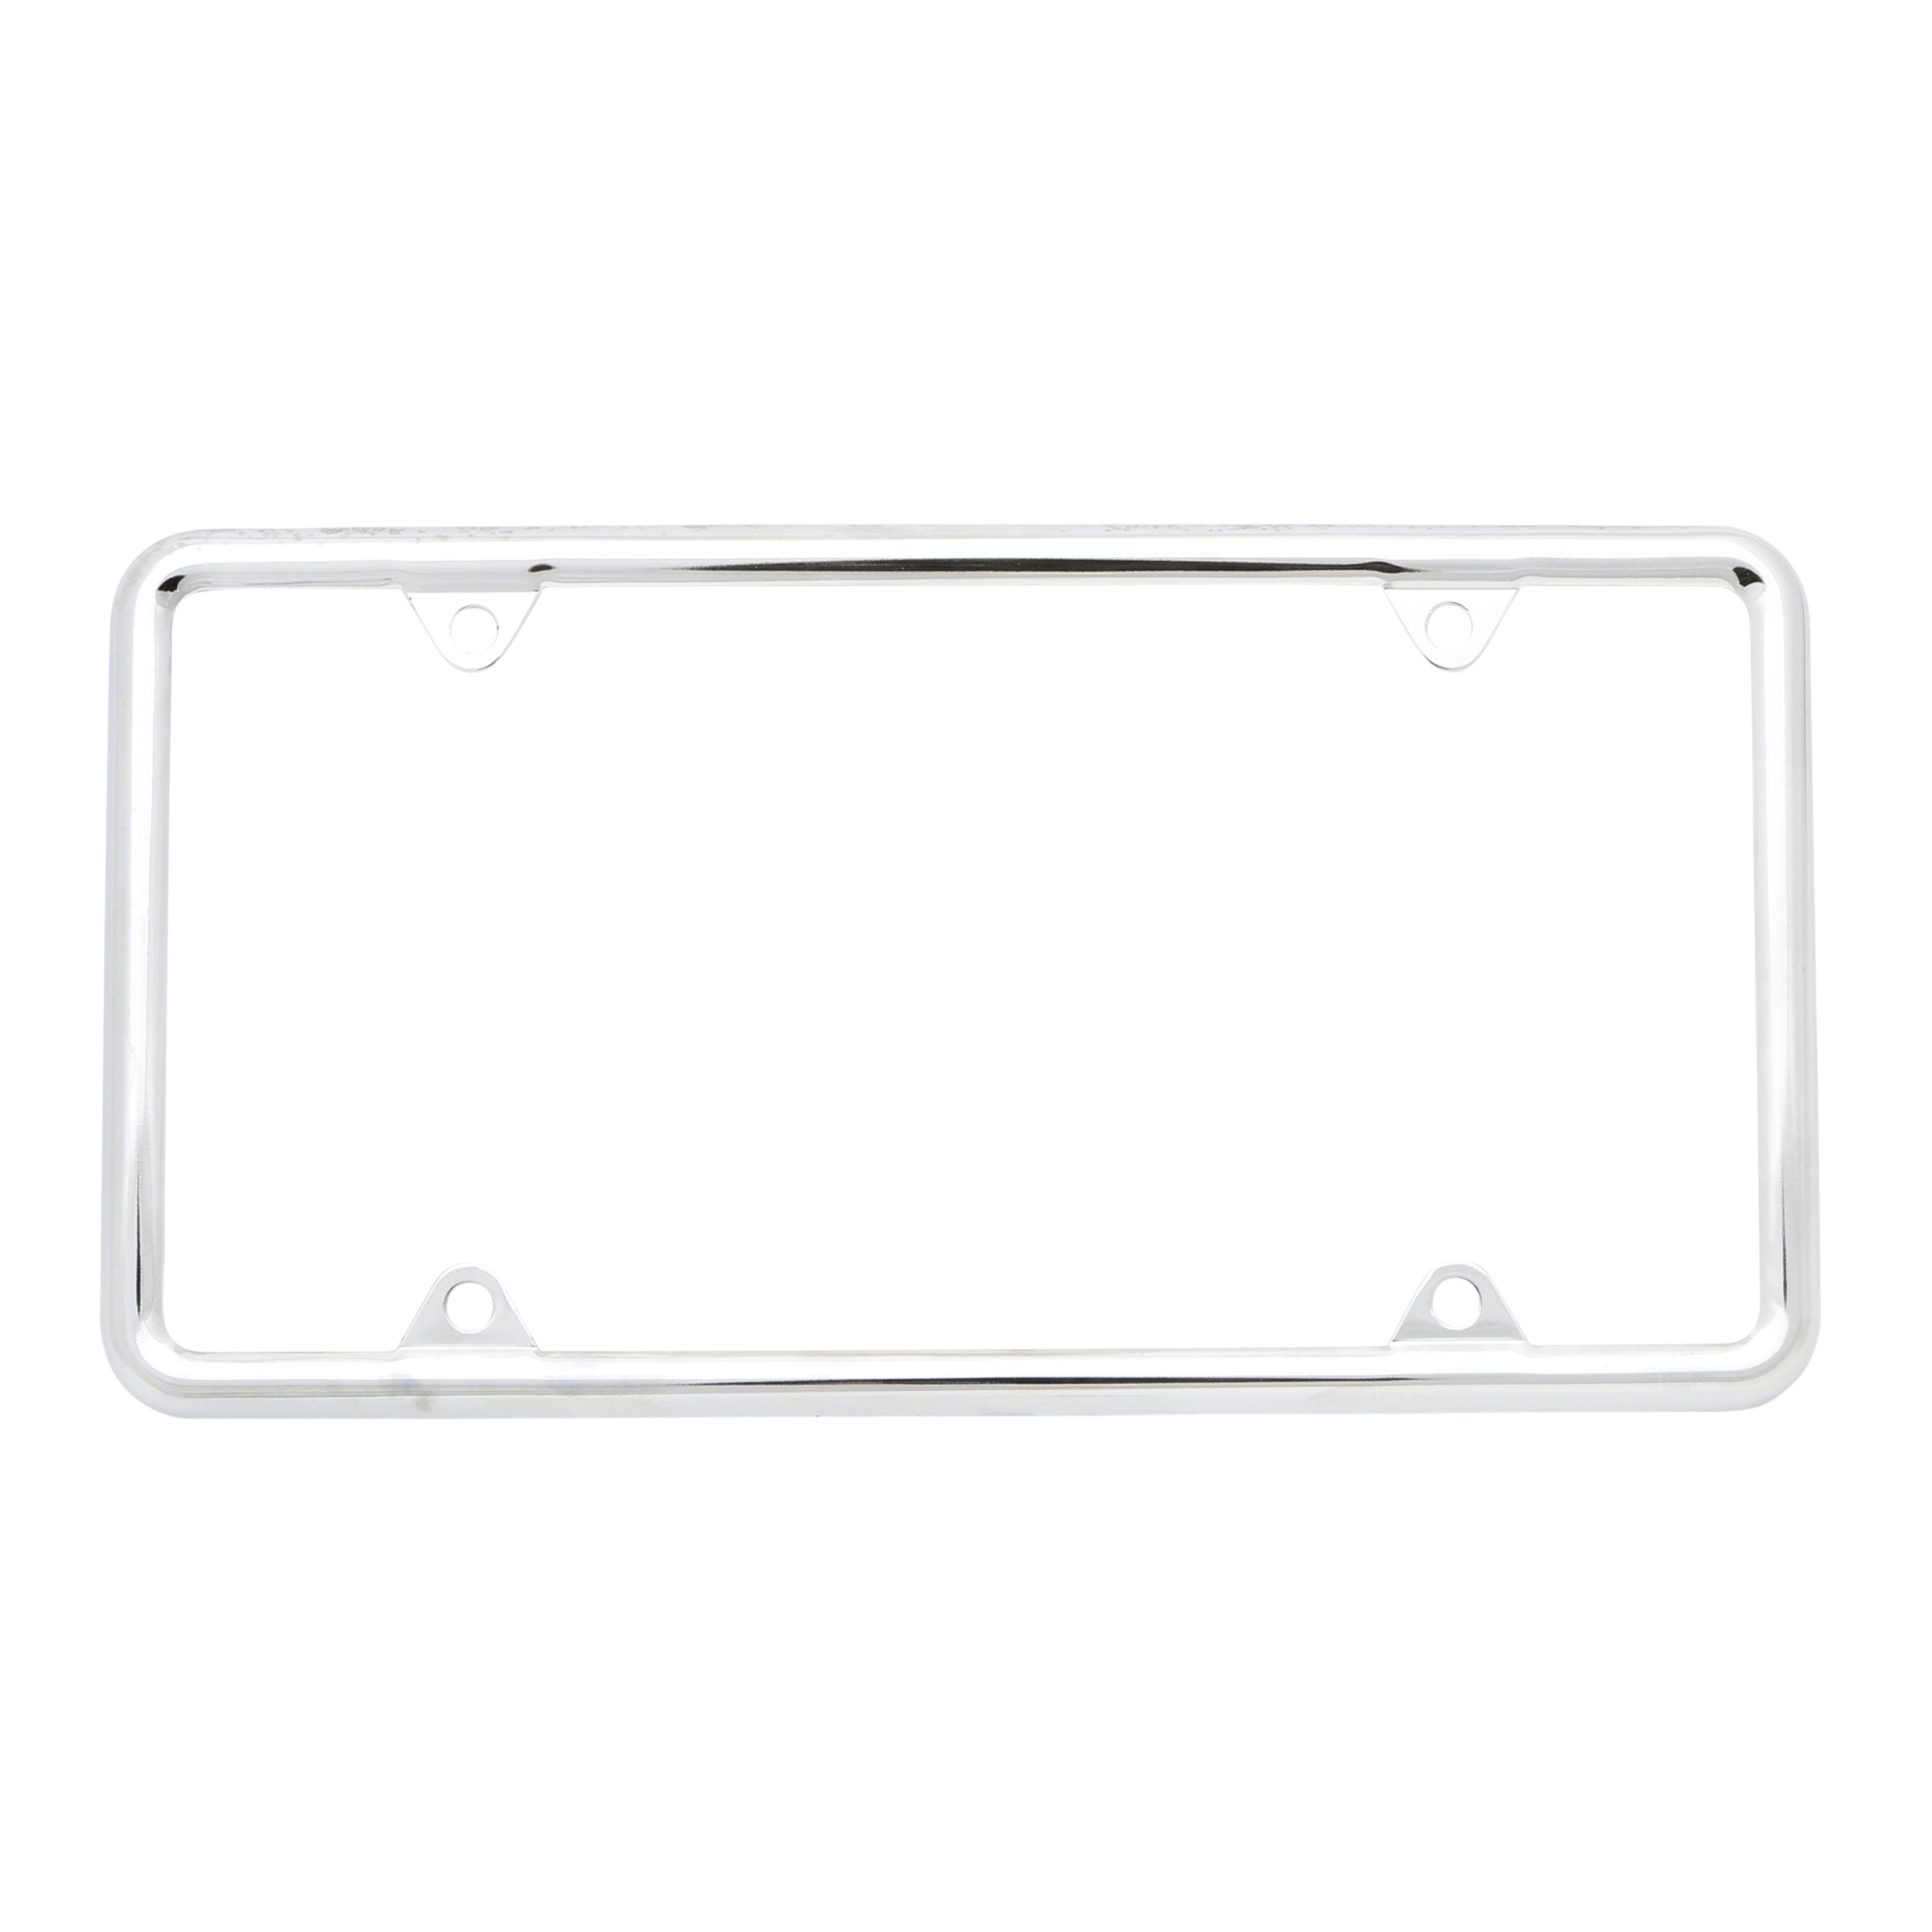 Chrome License Plate Frame • Economy